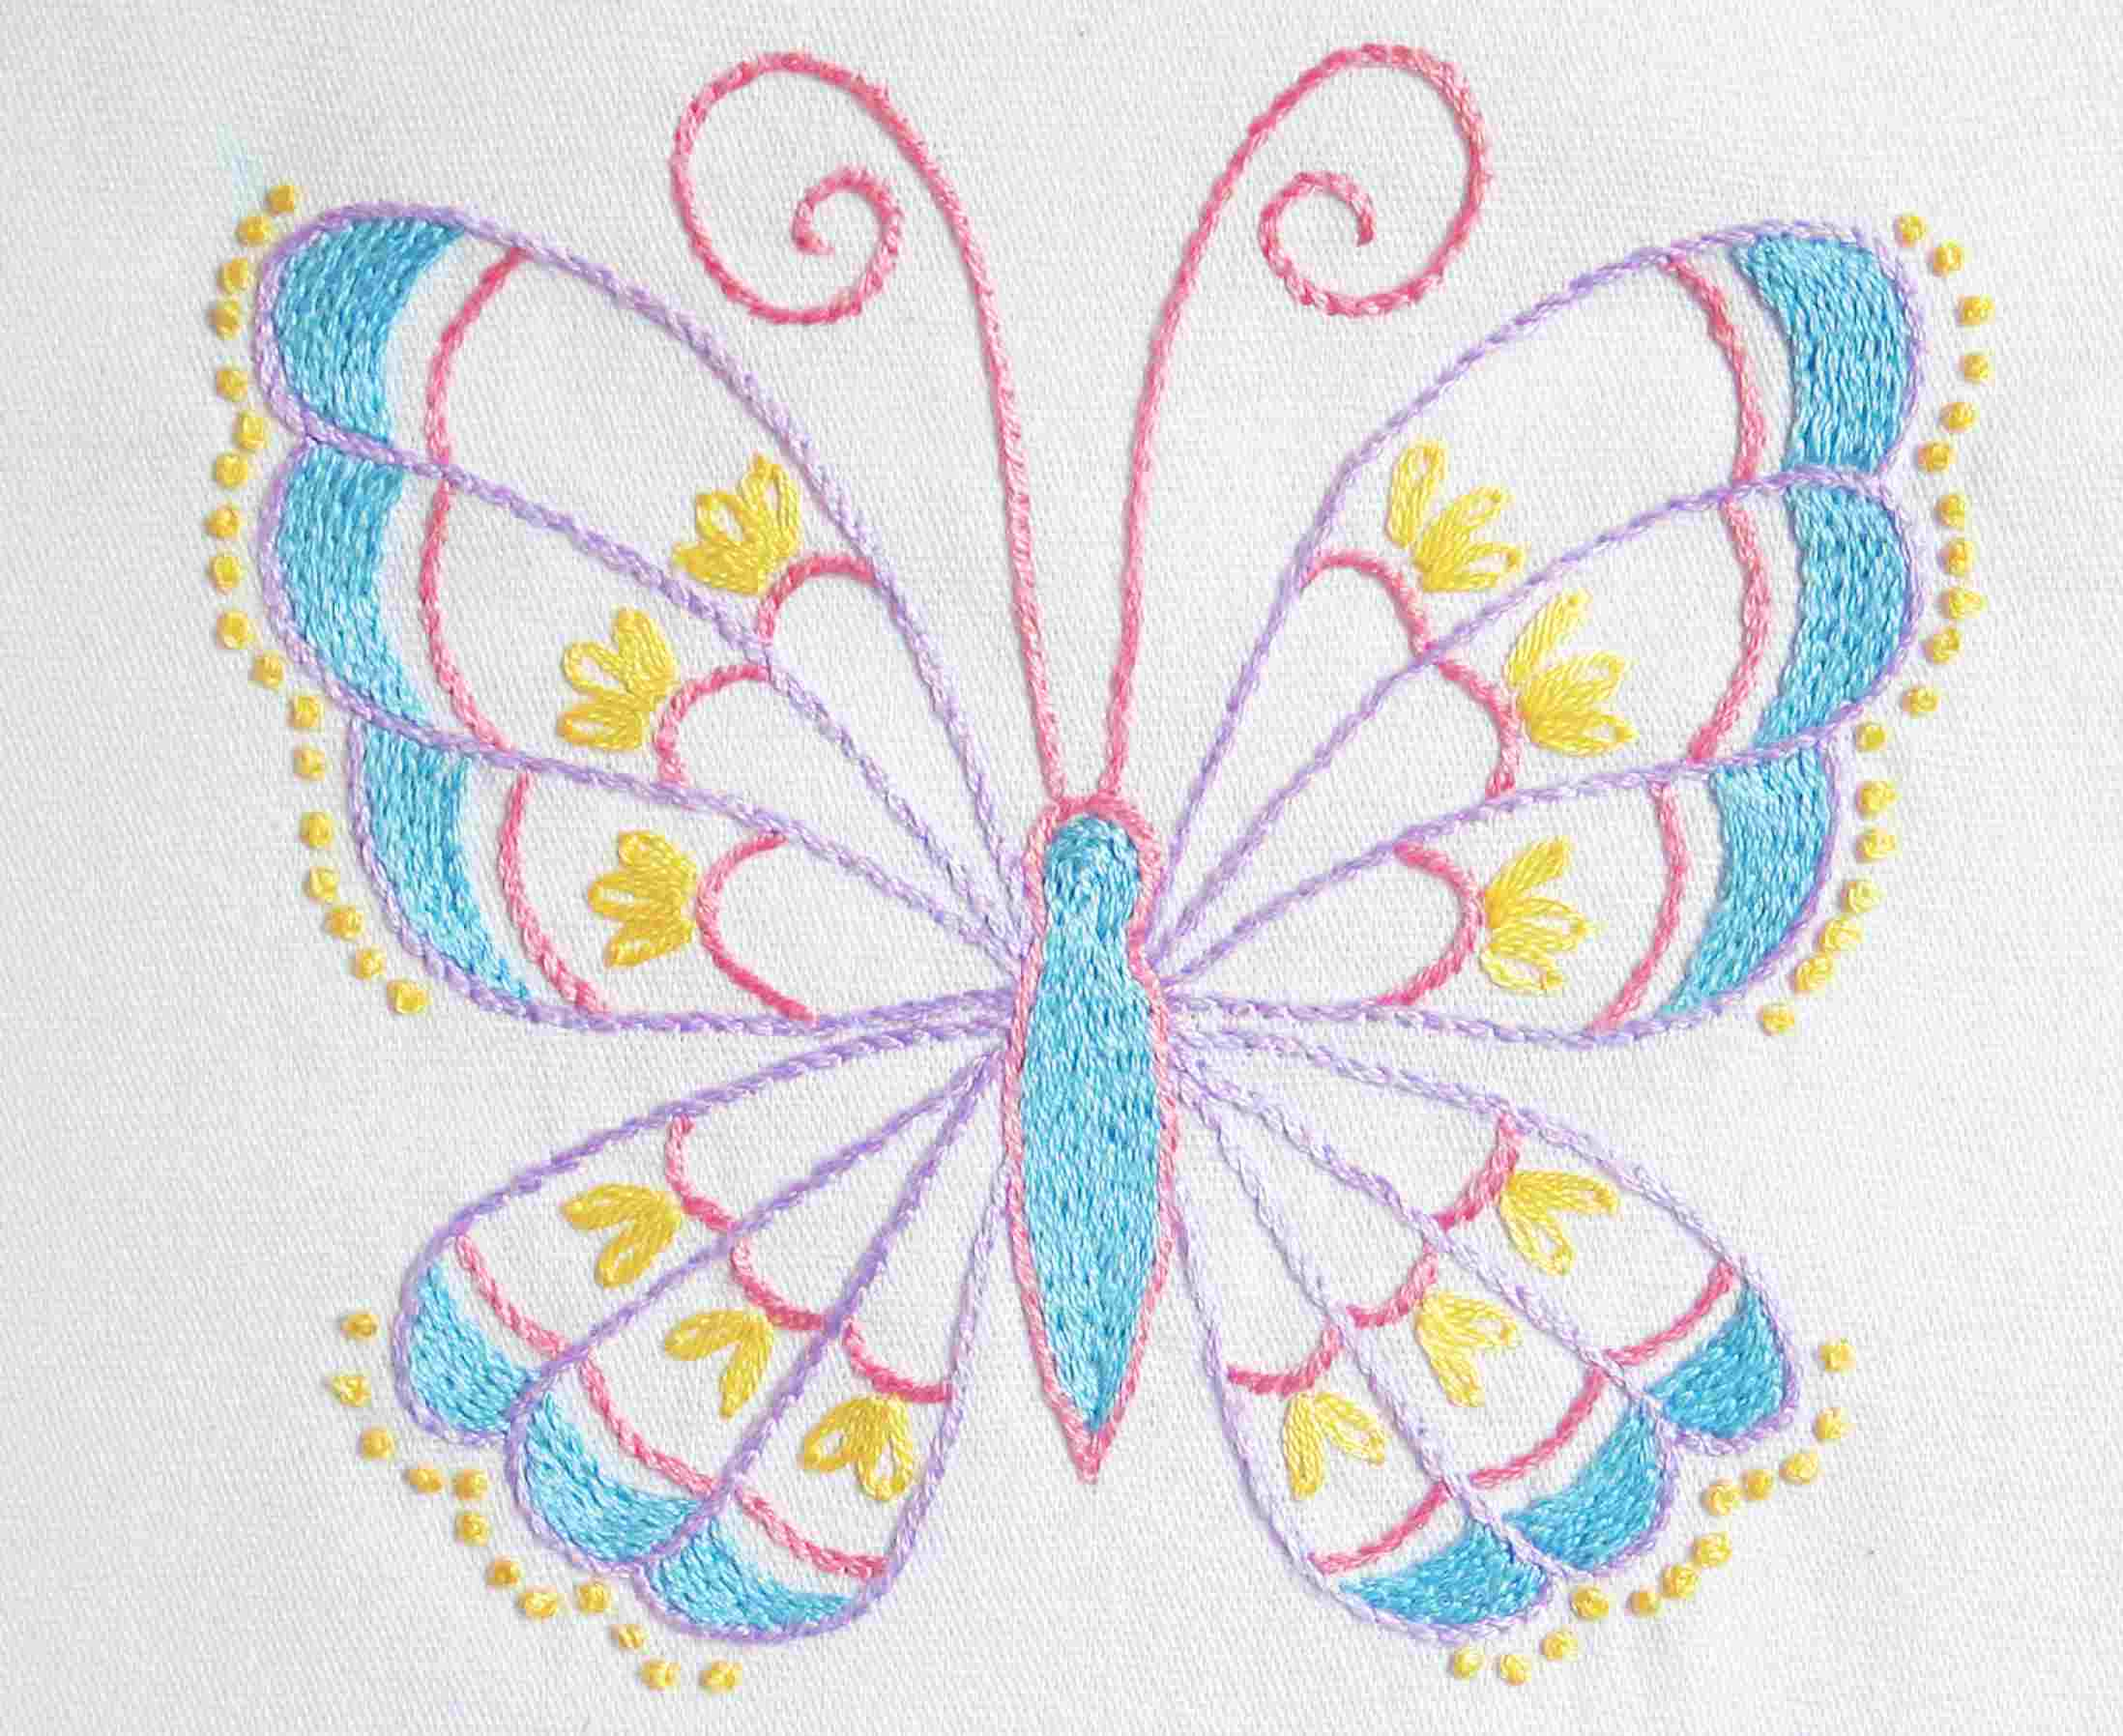 How To Make Embroidery Patterns Our Top 25 Free Embroidery Designs